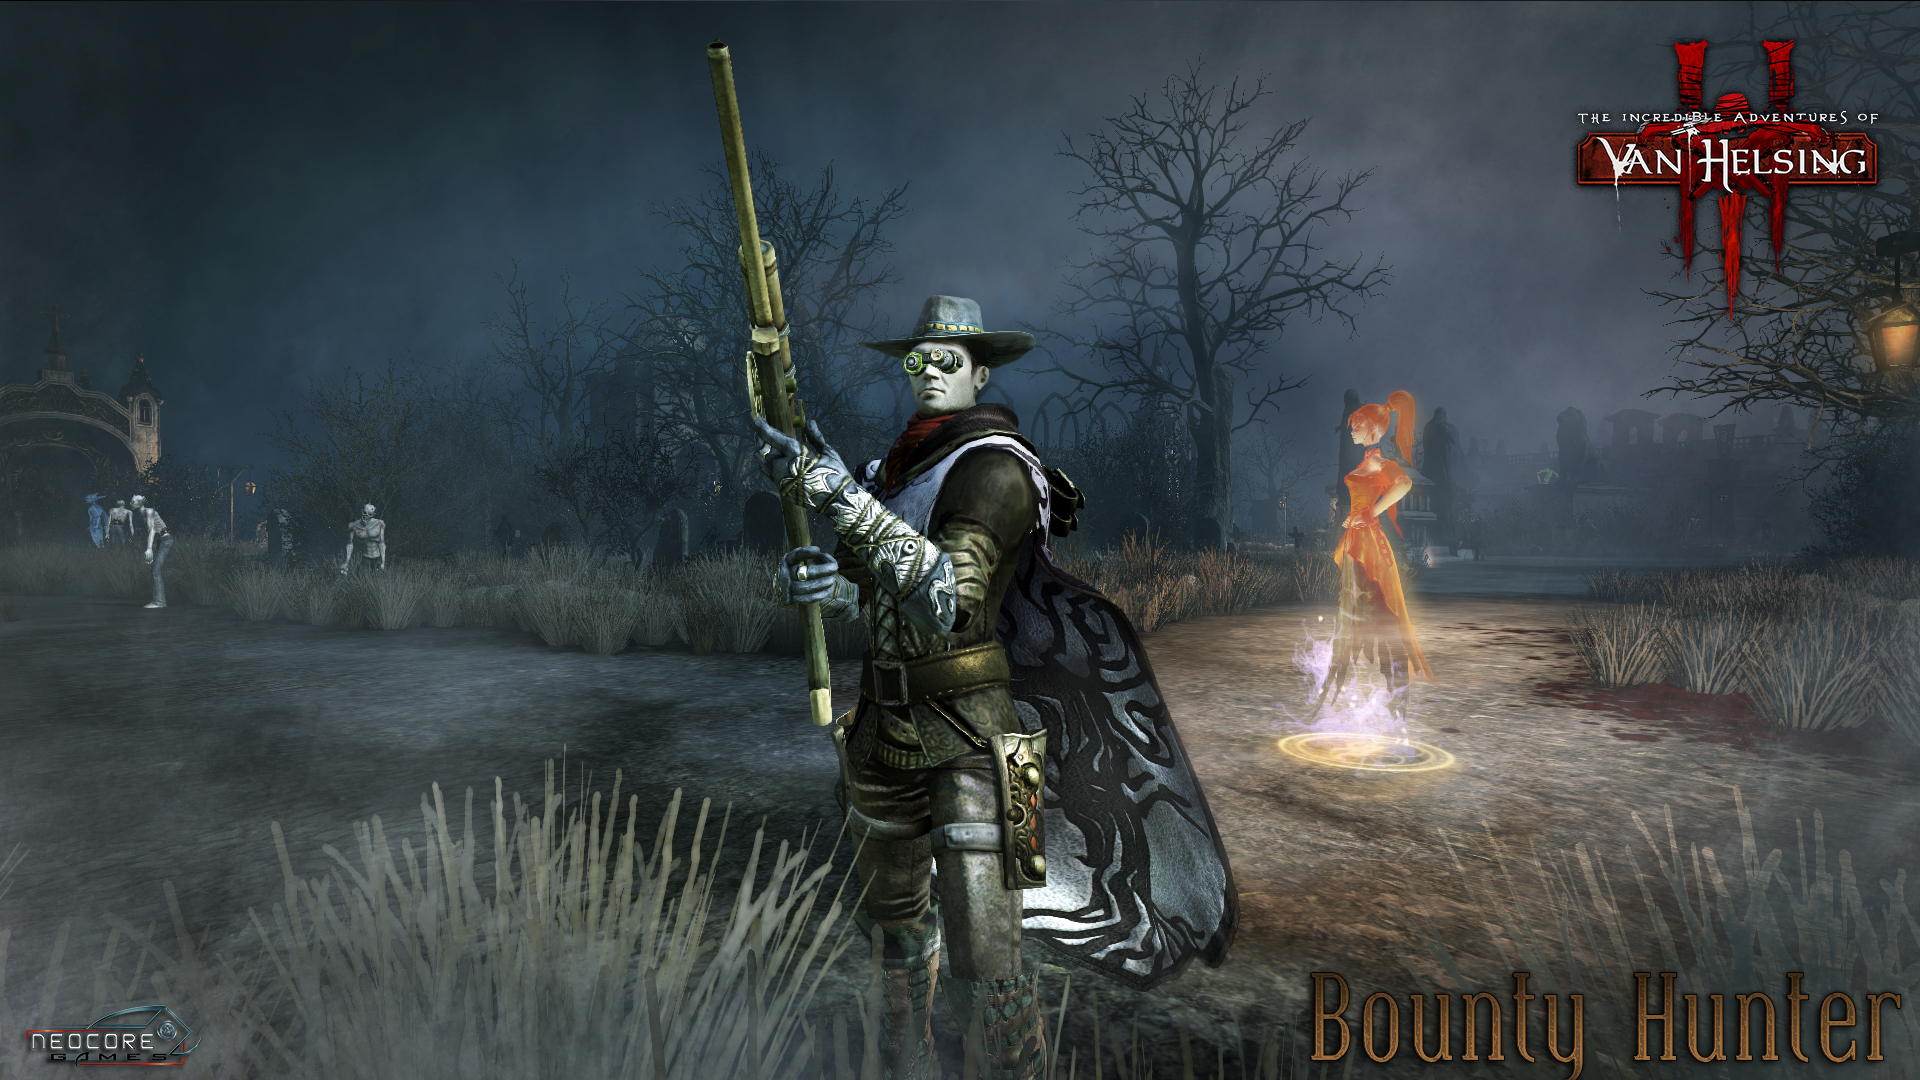 Состоялся релиз игры The Incredible Adventures Of Van Helsing 3